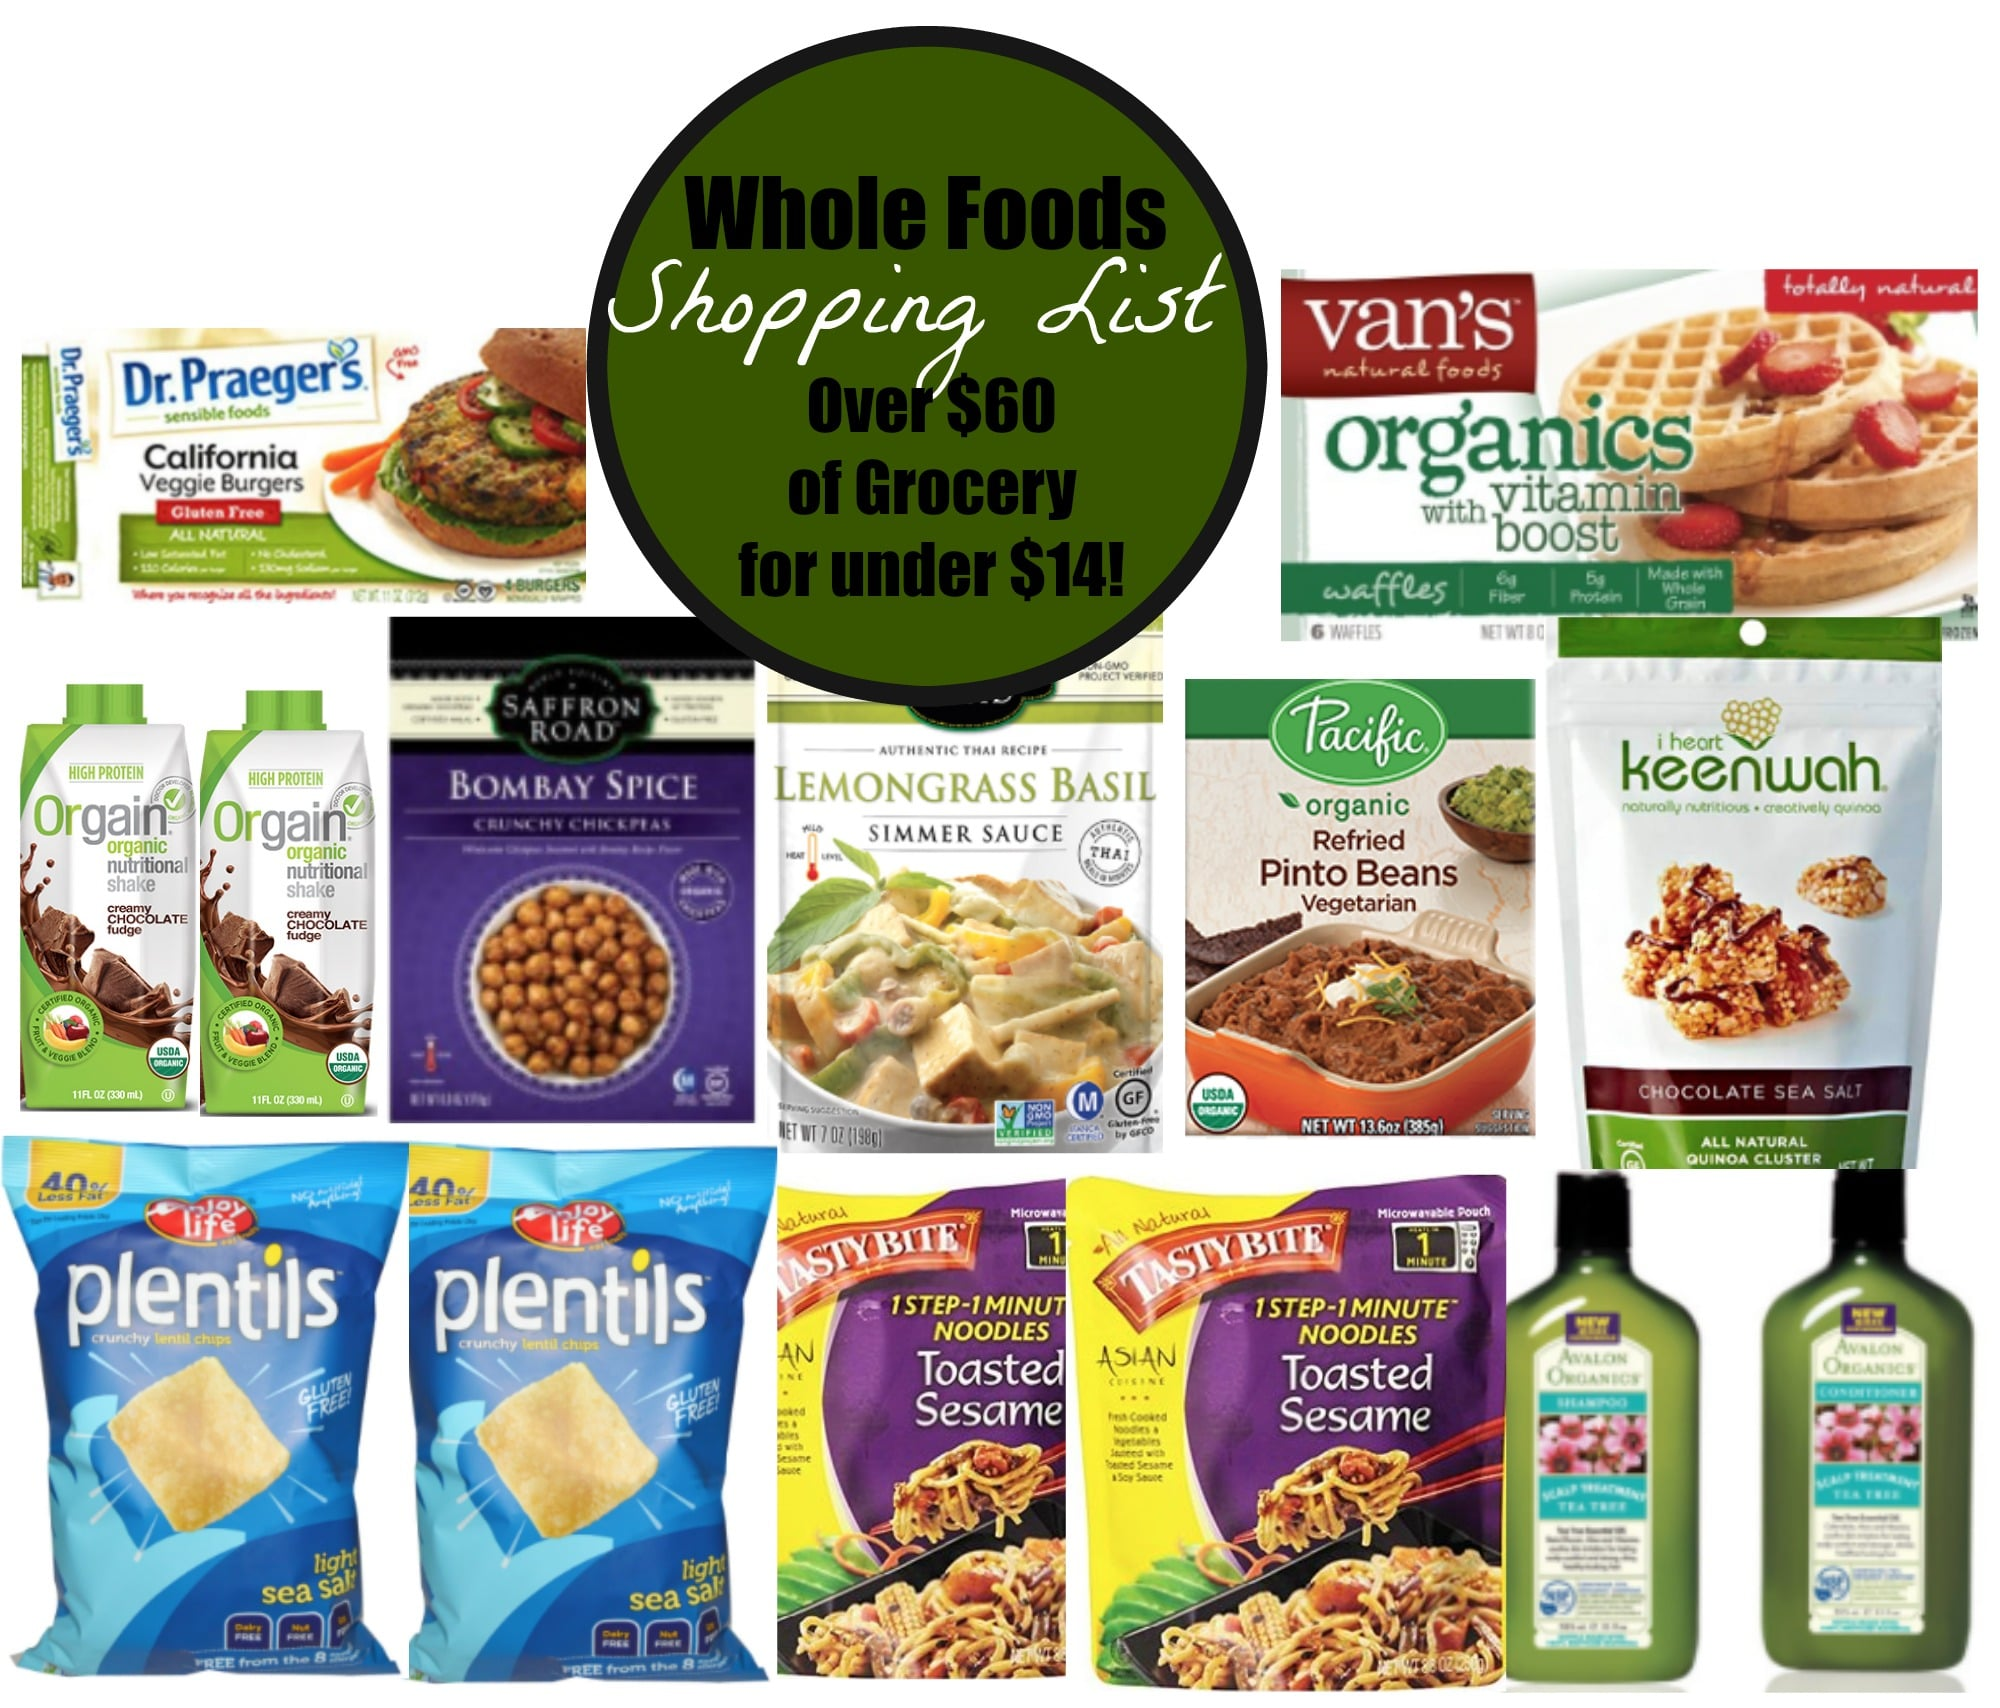 Whole foods market coupons